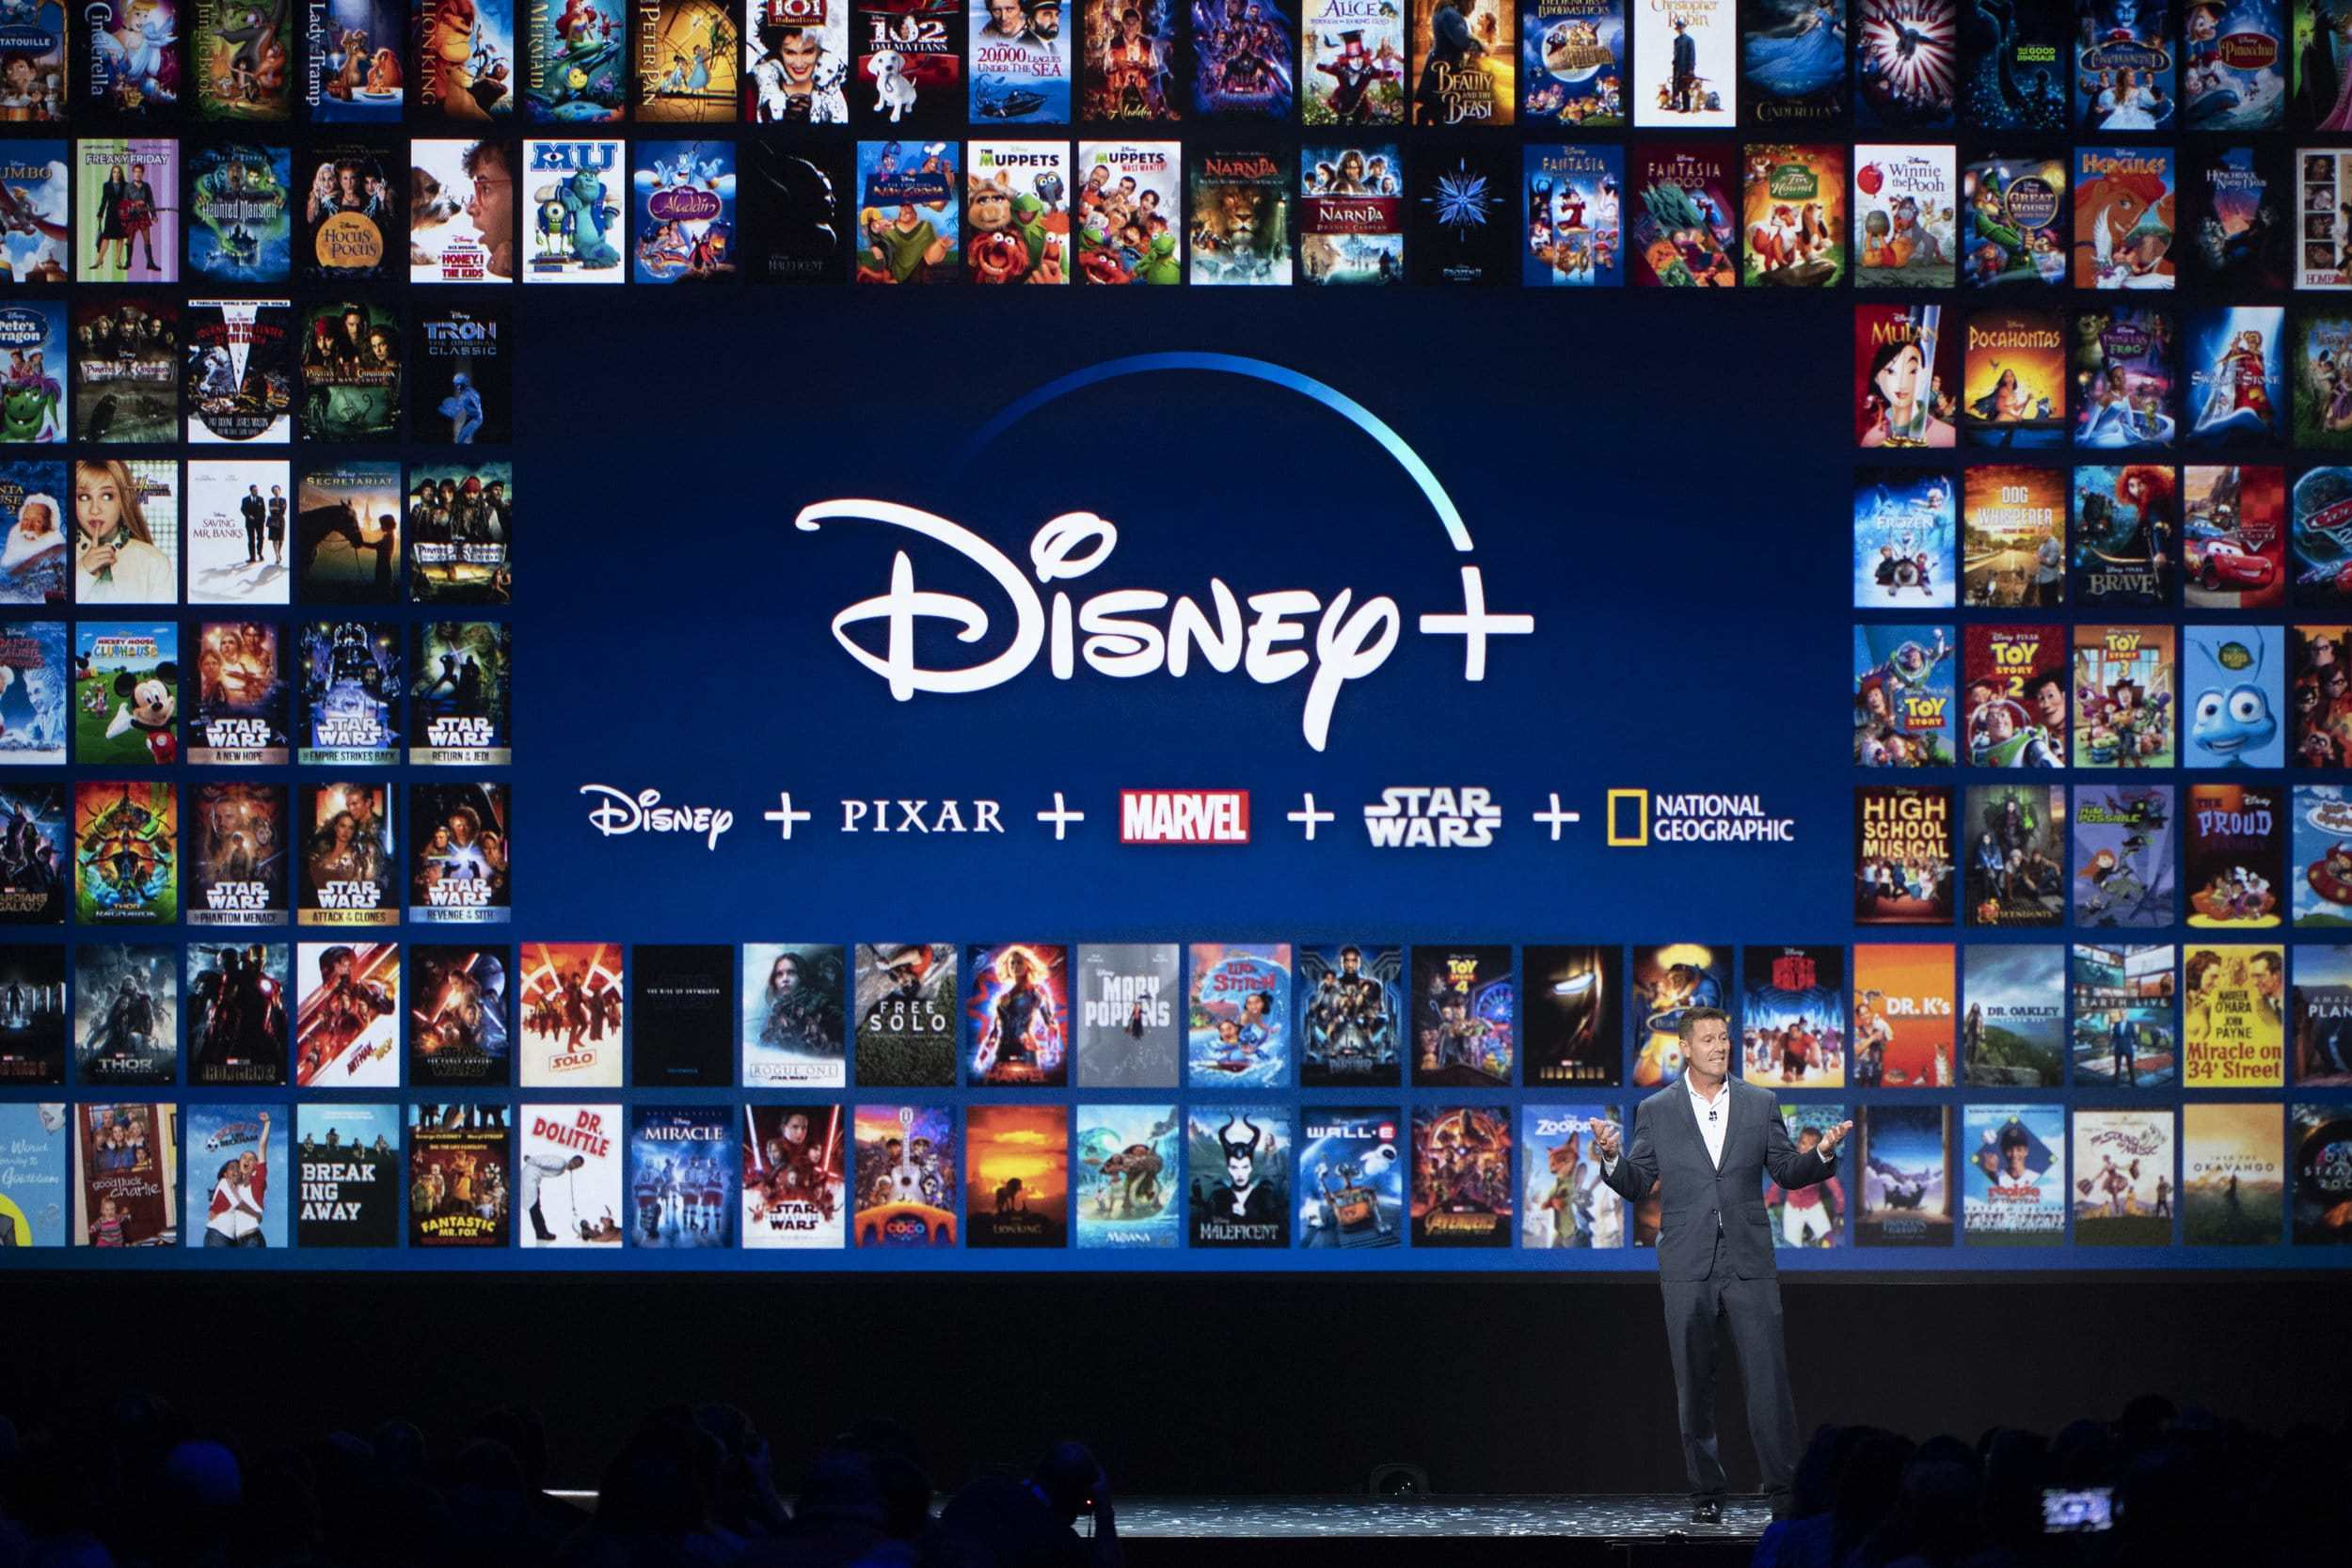 Disney+ User's Guide: Everything You Need to Know About the Streaming Service